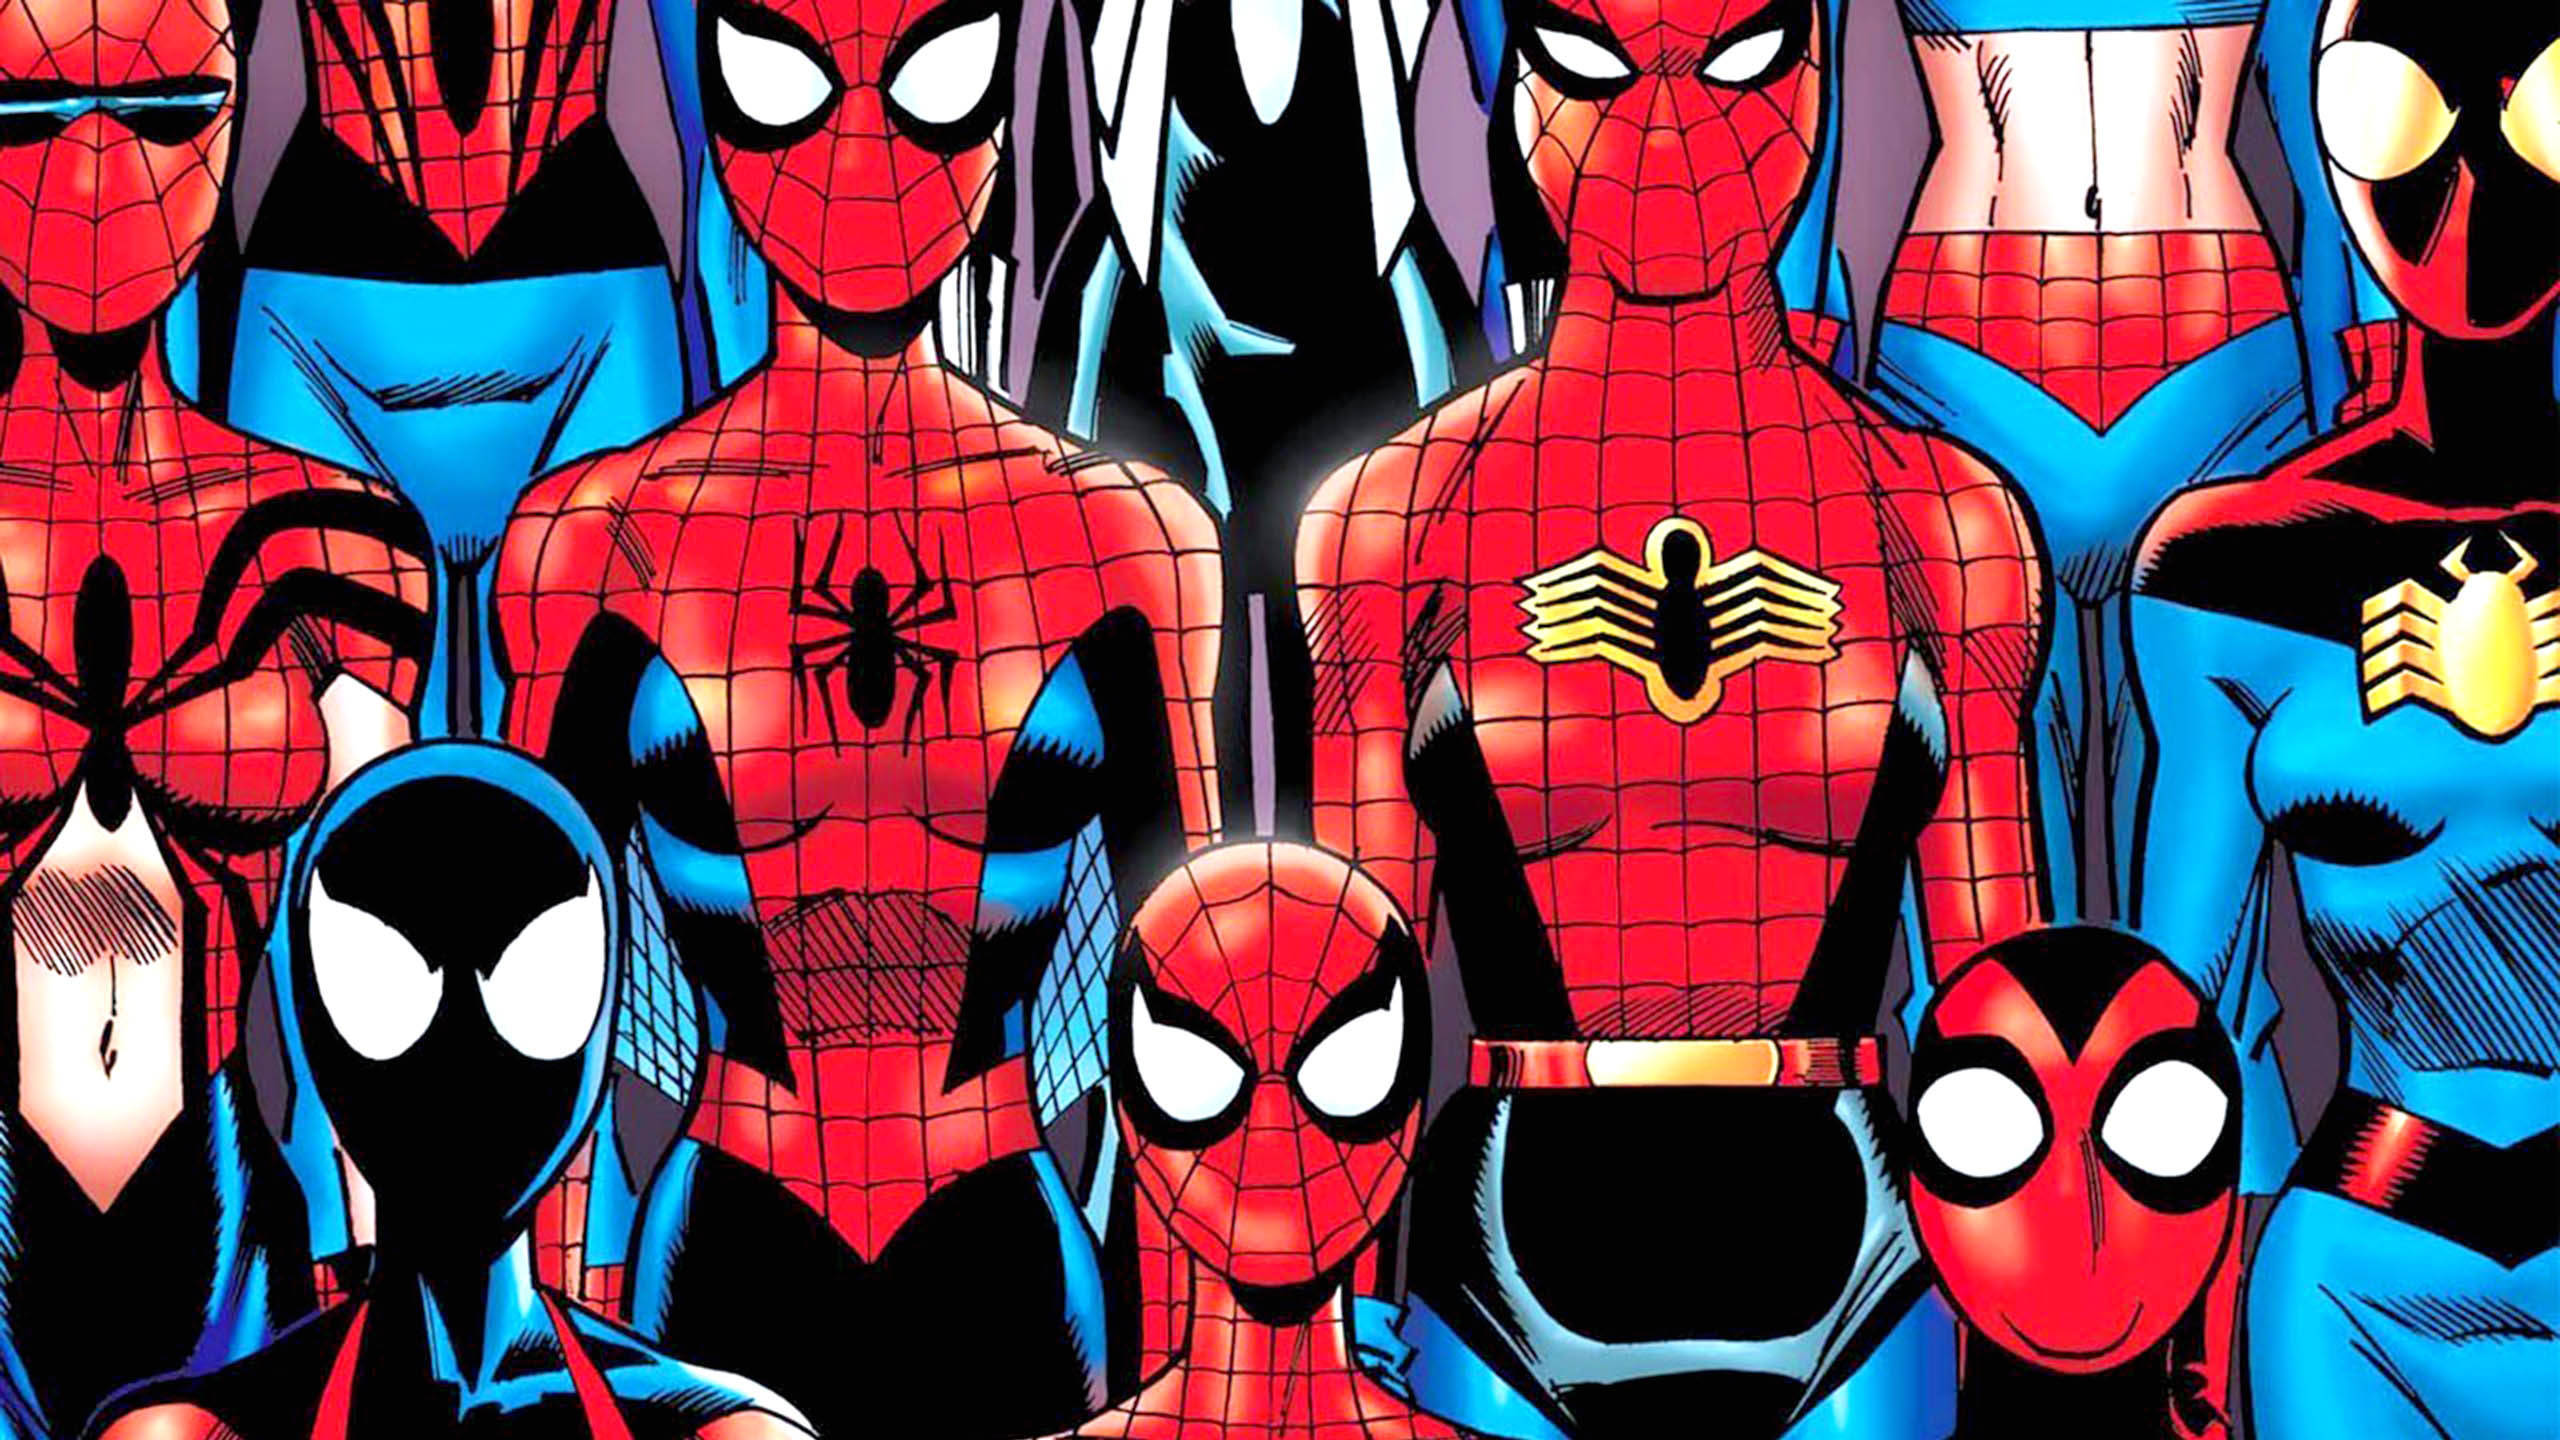 Spider Man Wallpapers Deadpool And Spiderman Wallpapers Gallery Image Mrfab